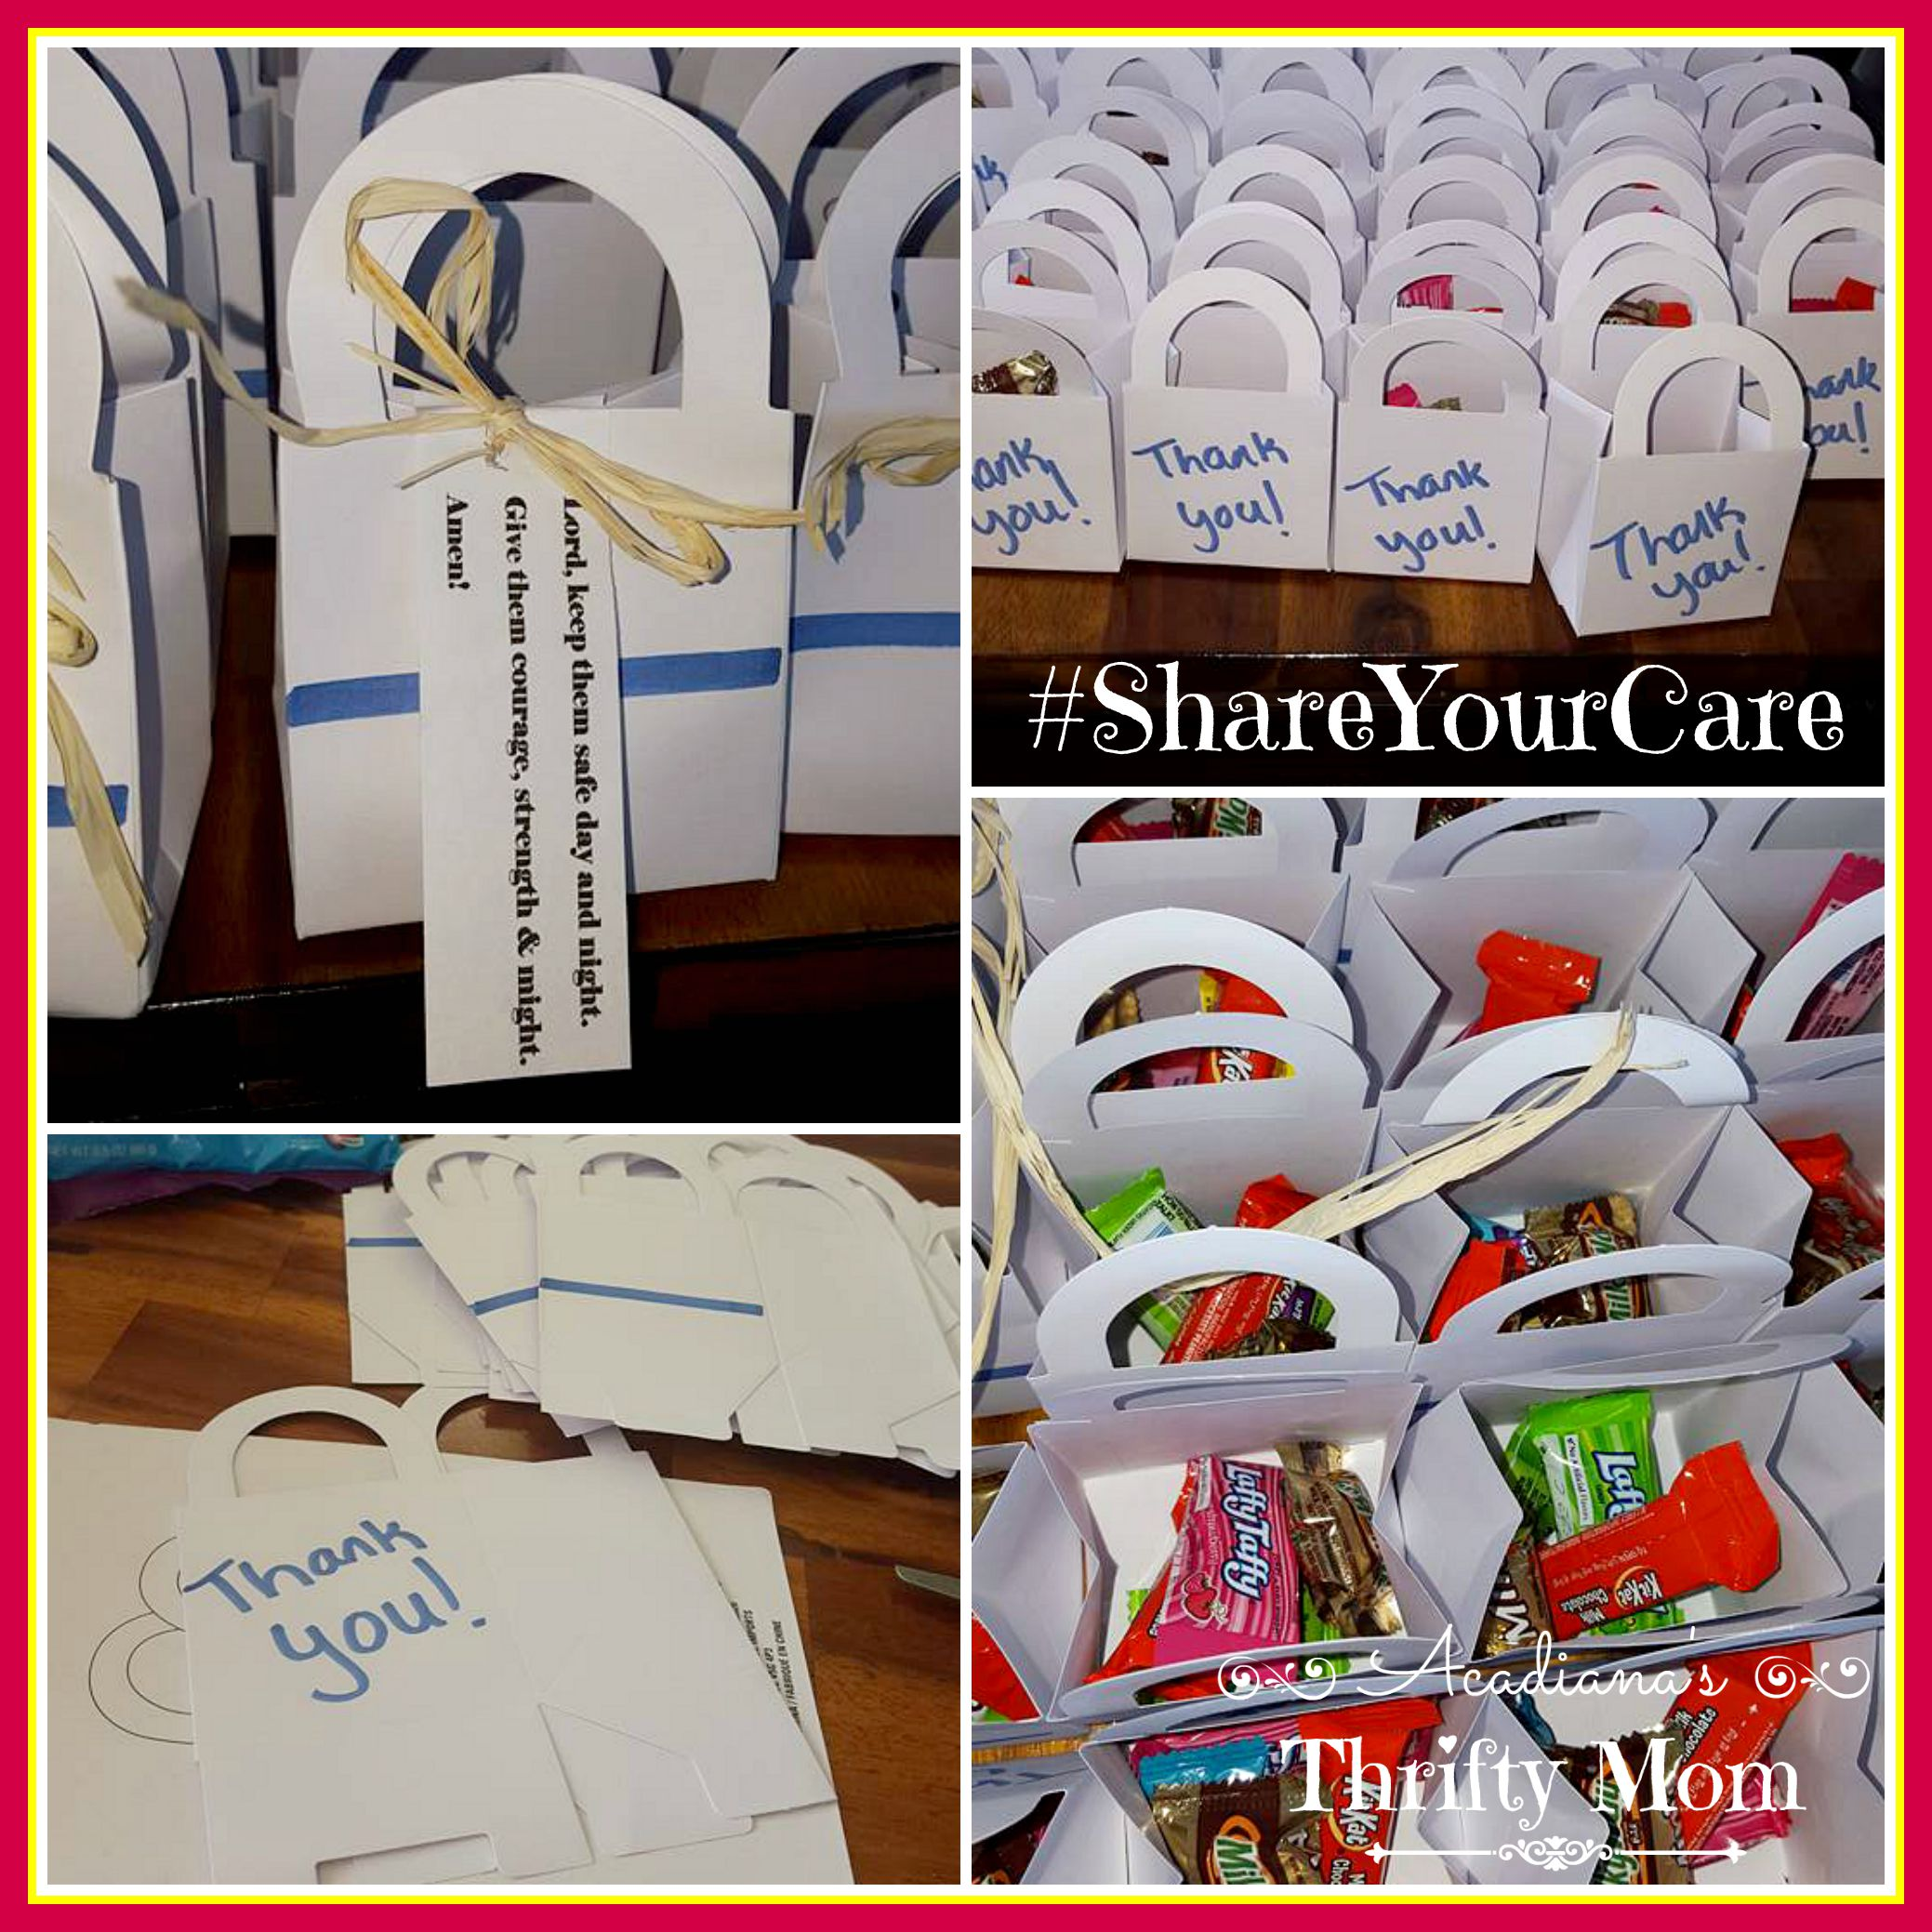 Let Your Local Law Enforcement Know You Care #ShareYourCare